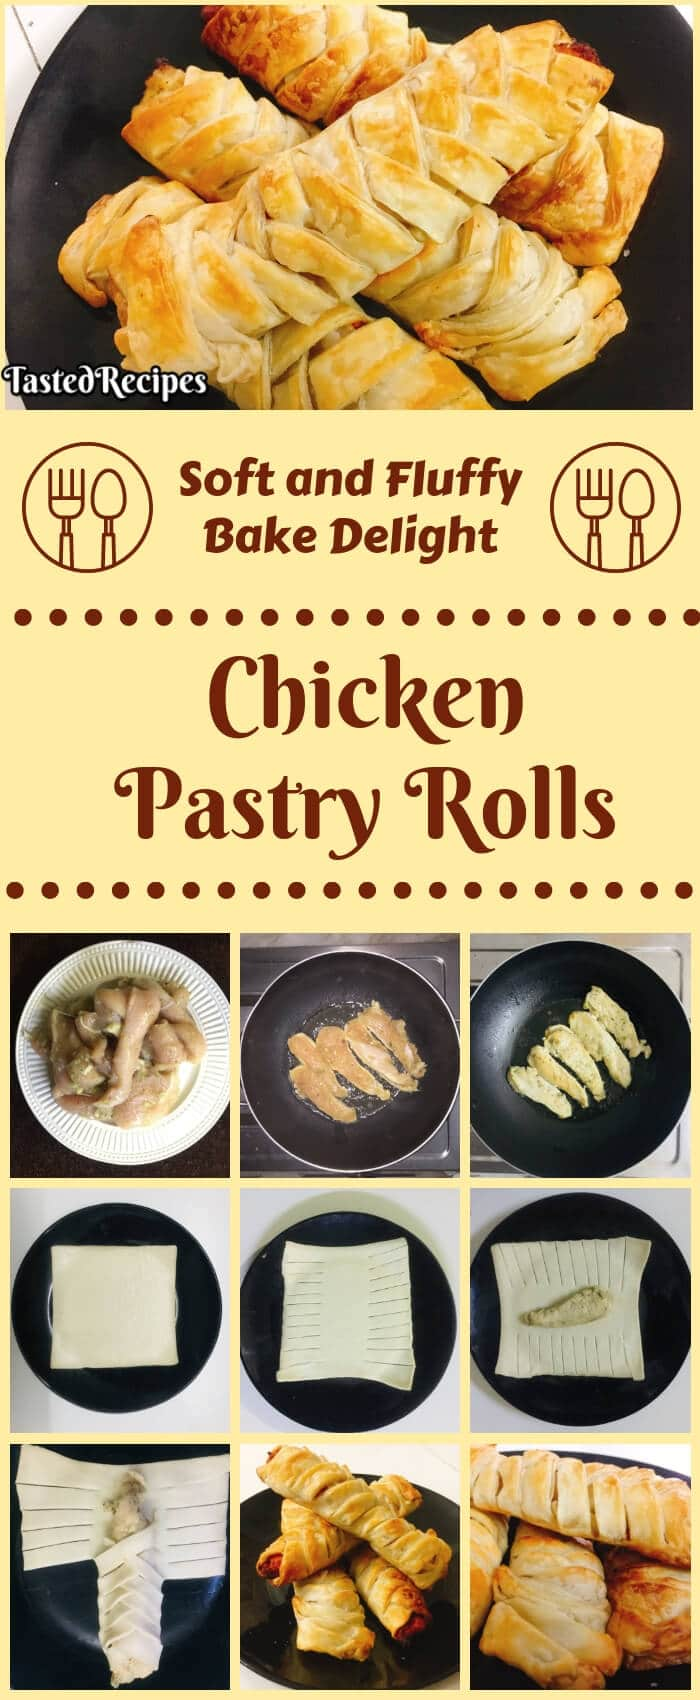 Chicken Pastry Roll